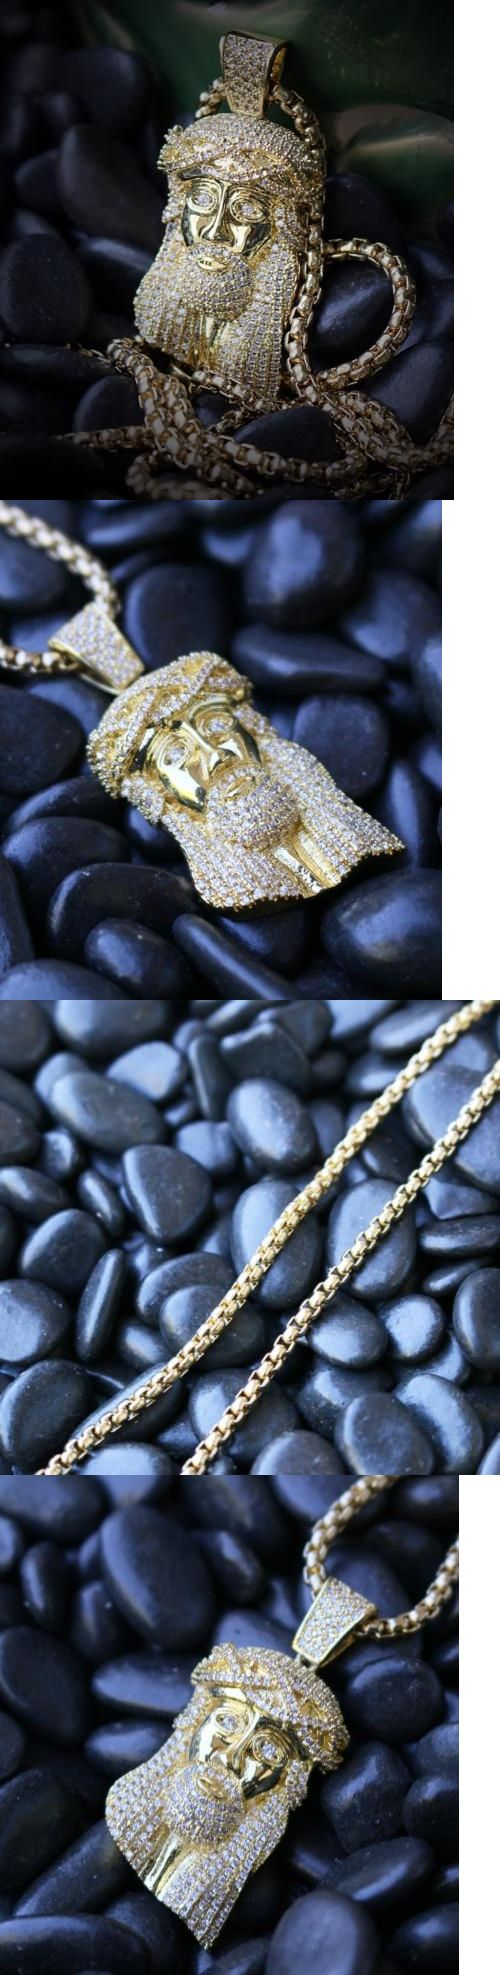 Necklaces and Pendants 155101: Mini Hip Hop Gold Plated Jesus Piece Charm Pendant With Pearl Box Chain Necklace -> BUY IT NOW ONLY: $35.87 on eBay!